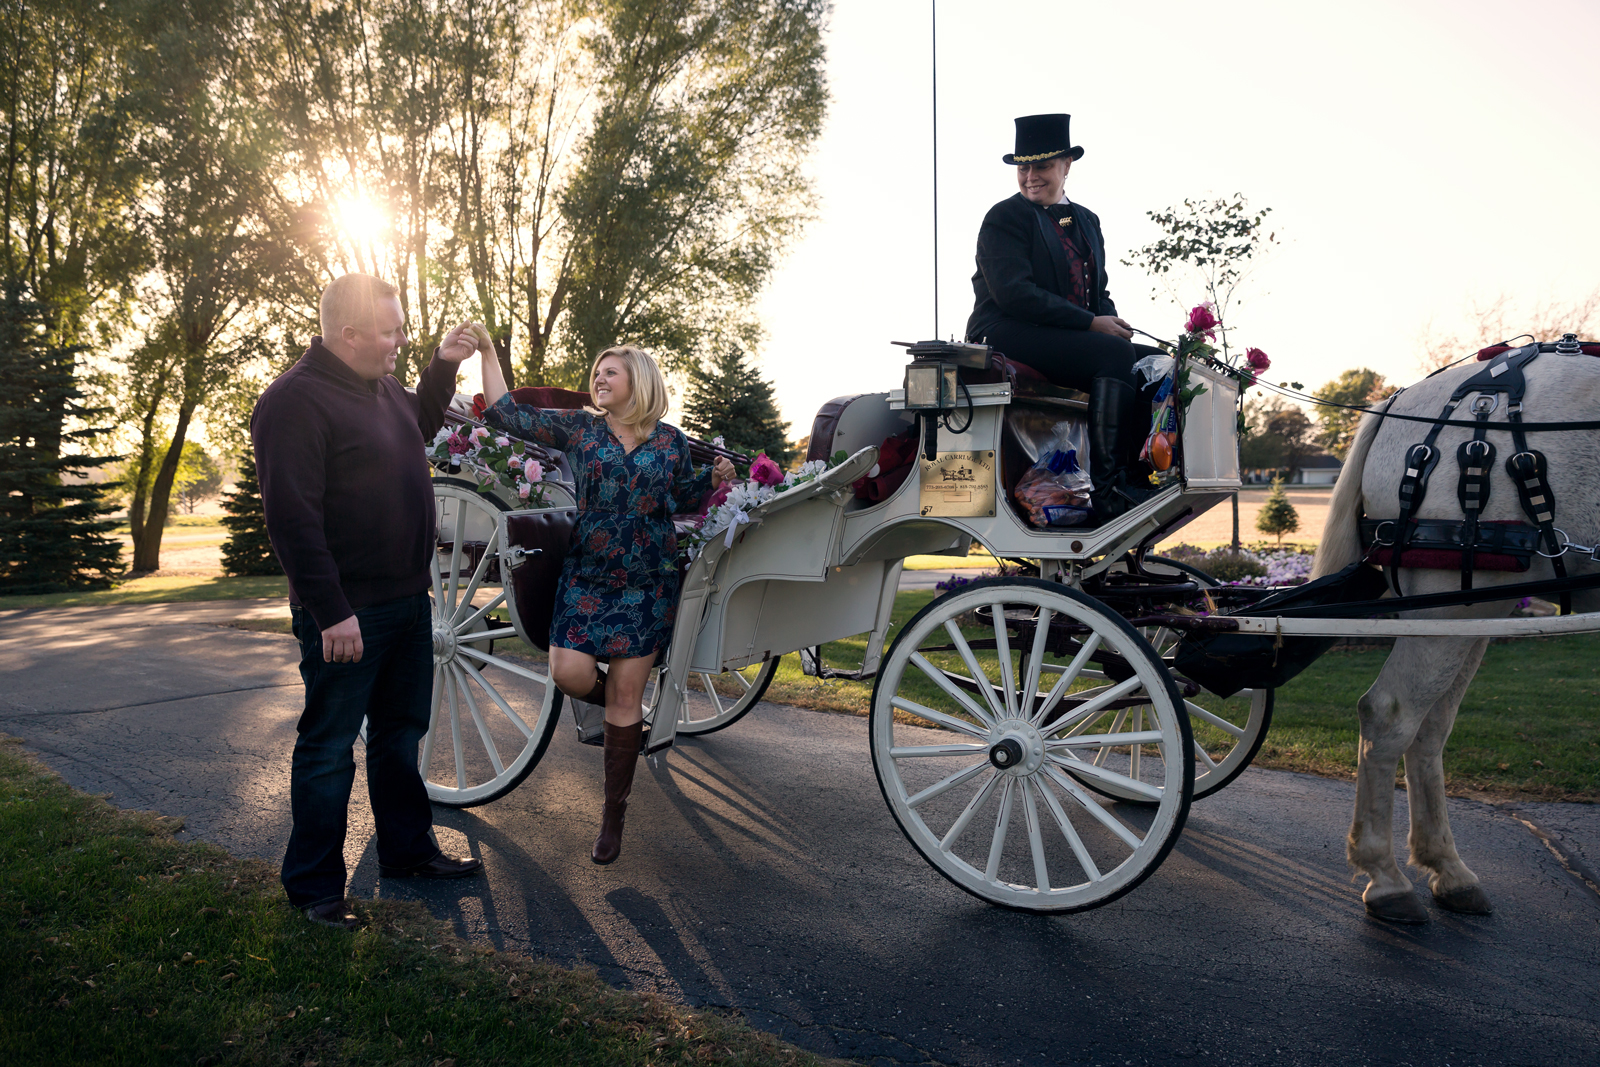 Twinbliss_Photography_Chicago_Weddings_Engagements_Illinois_horse_Carriage